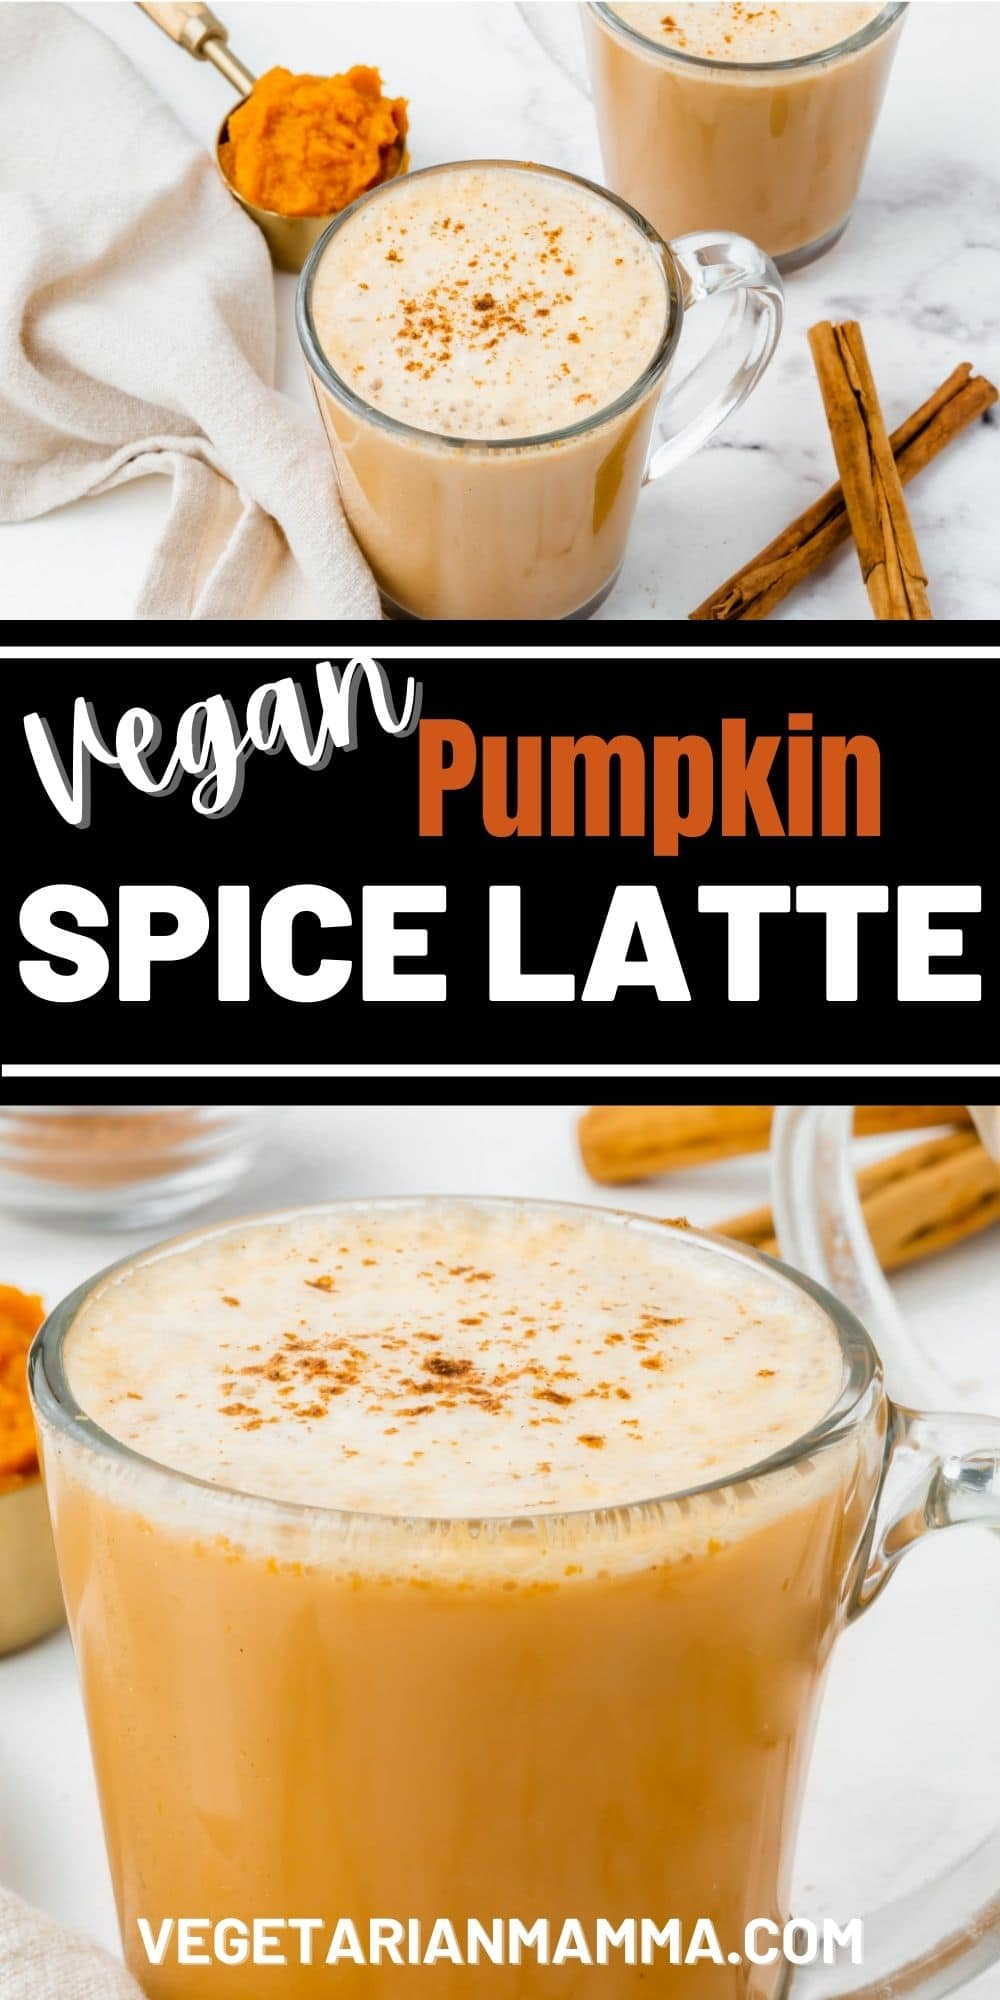 Skip the Starbucks line and make your own vegan pumpkin spiced latte at home! You only need 6 basic ingredients to make this latte recipe — and no fancy equipment required!